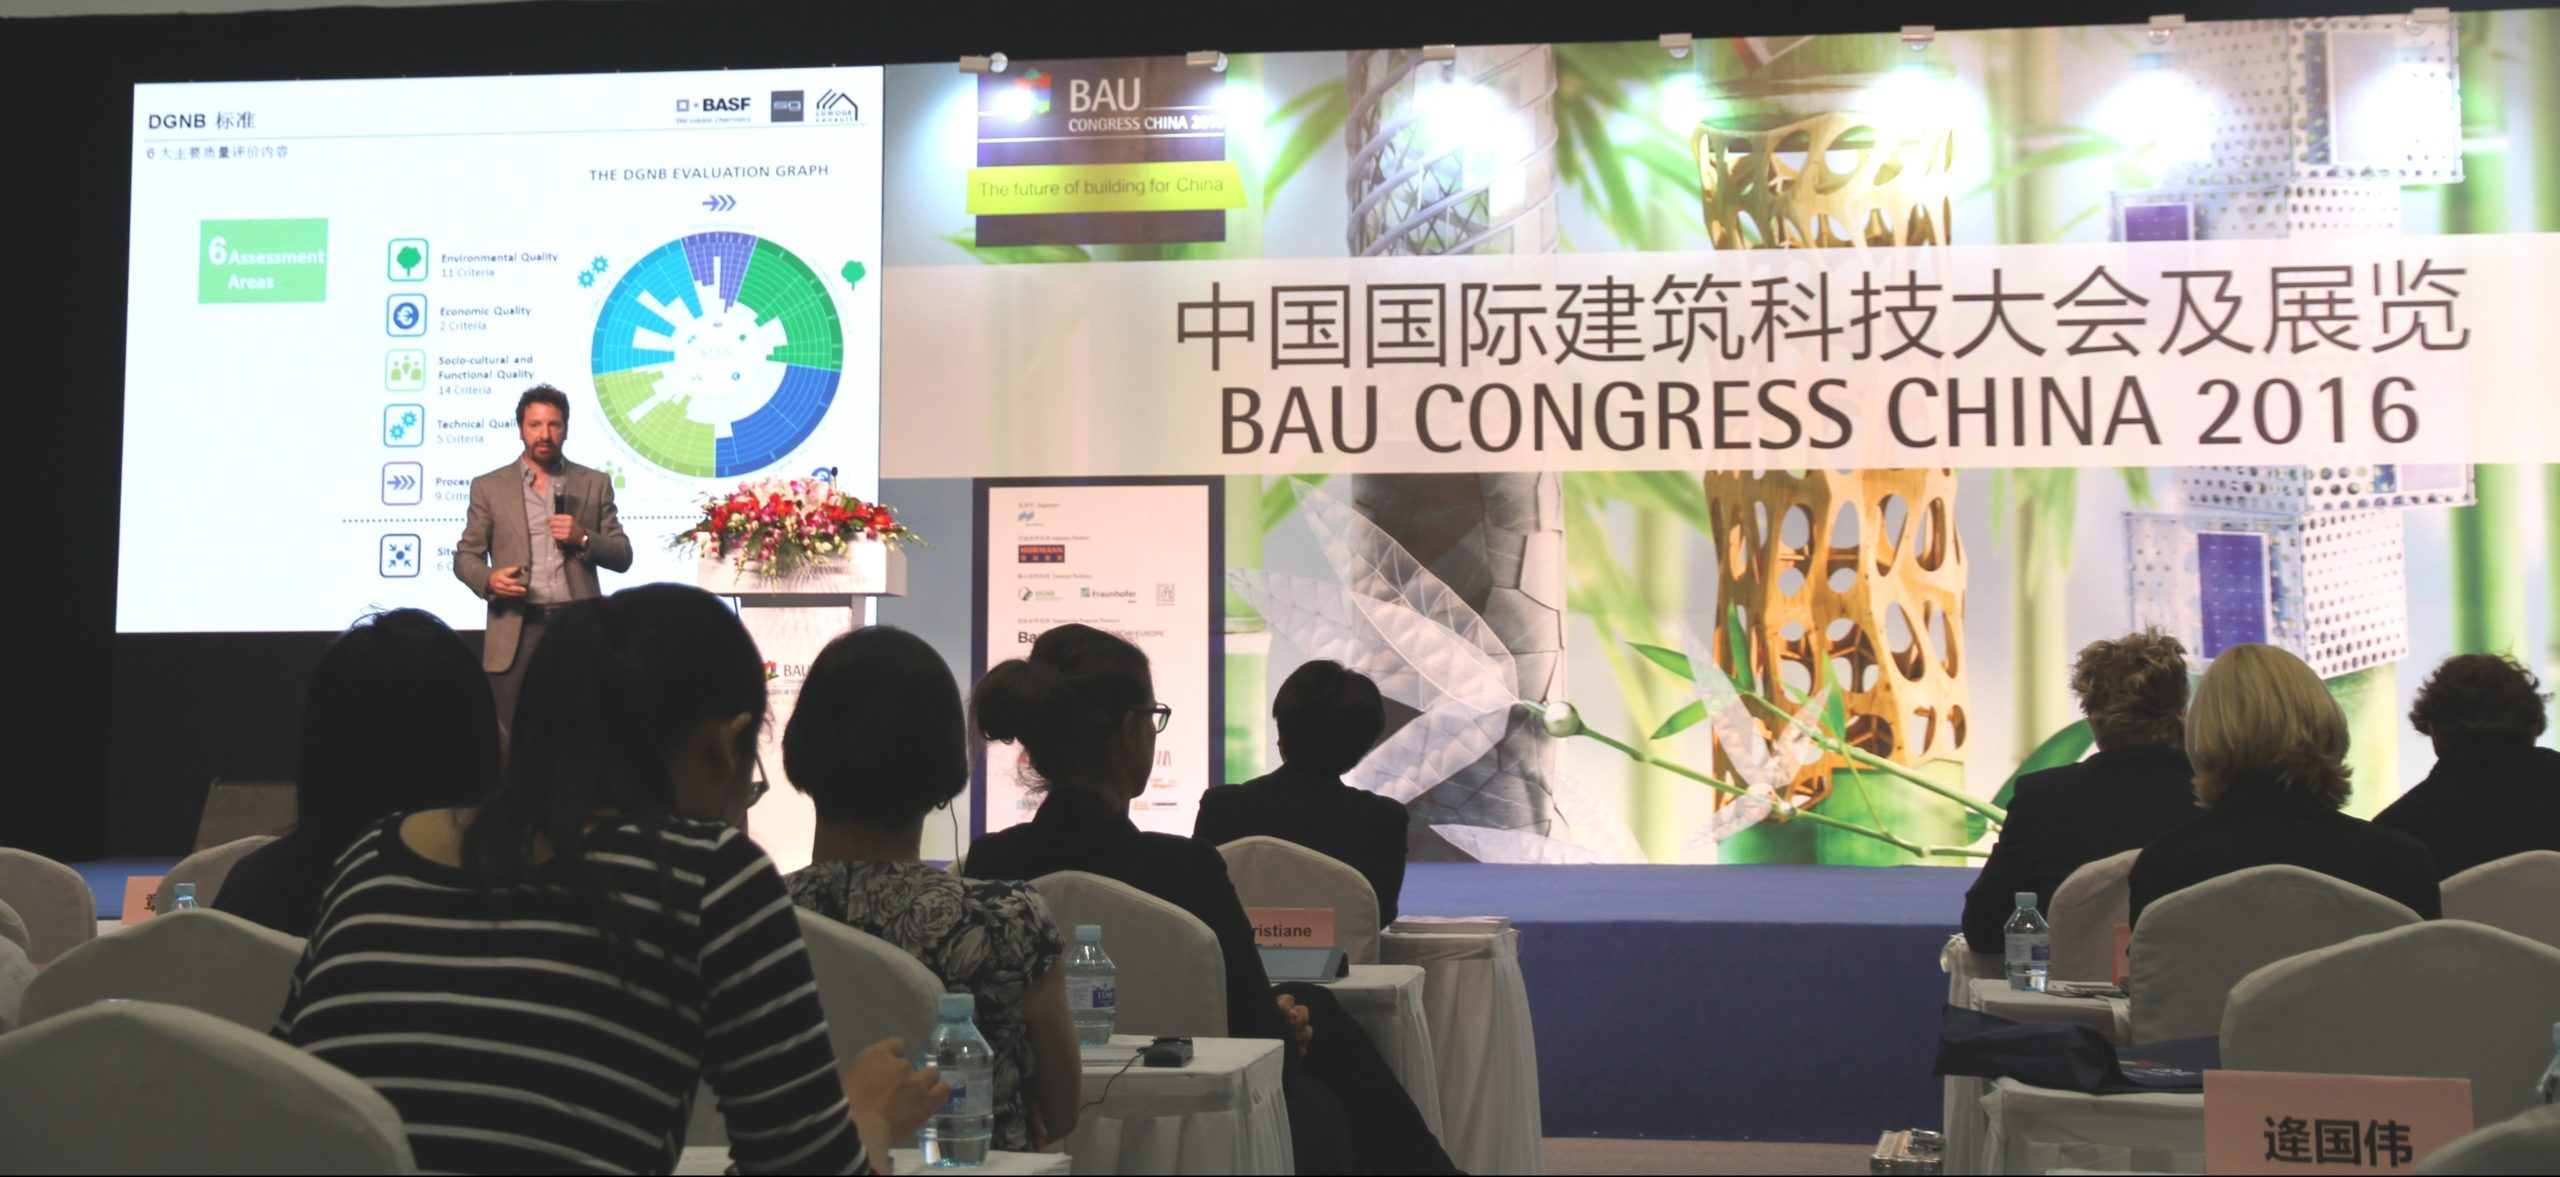 Rolf Demmler presenting the DGNB pre-certified BASF R&D Center during BAU Congress China 2016